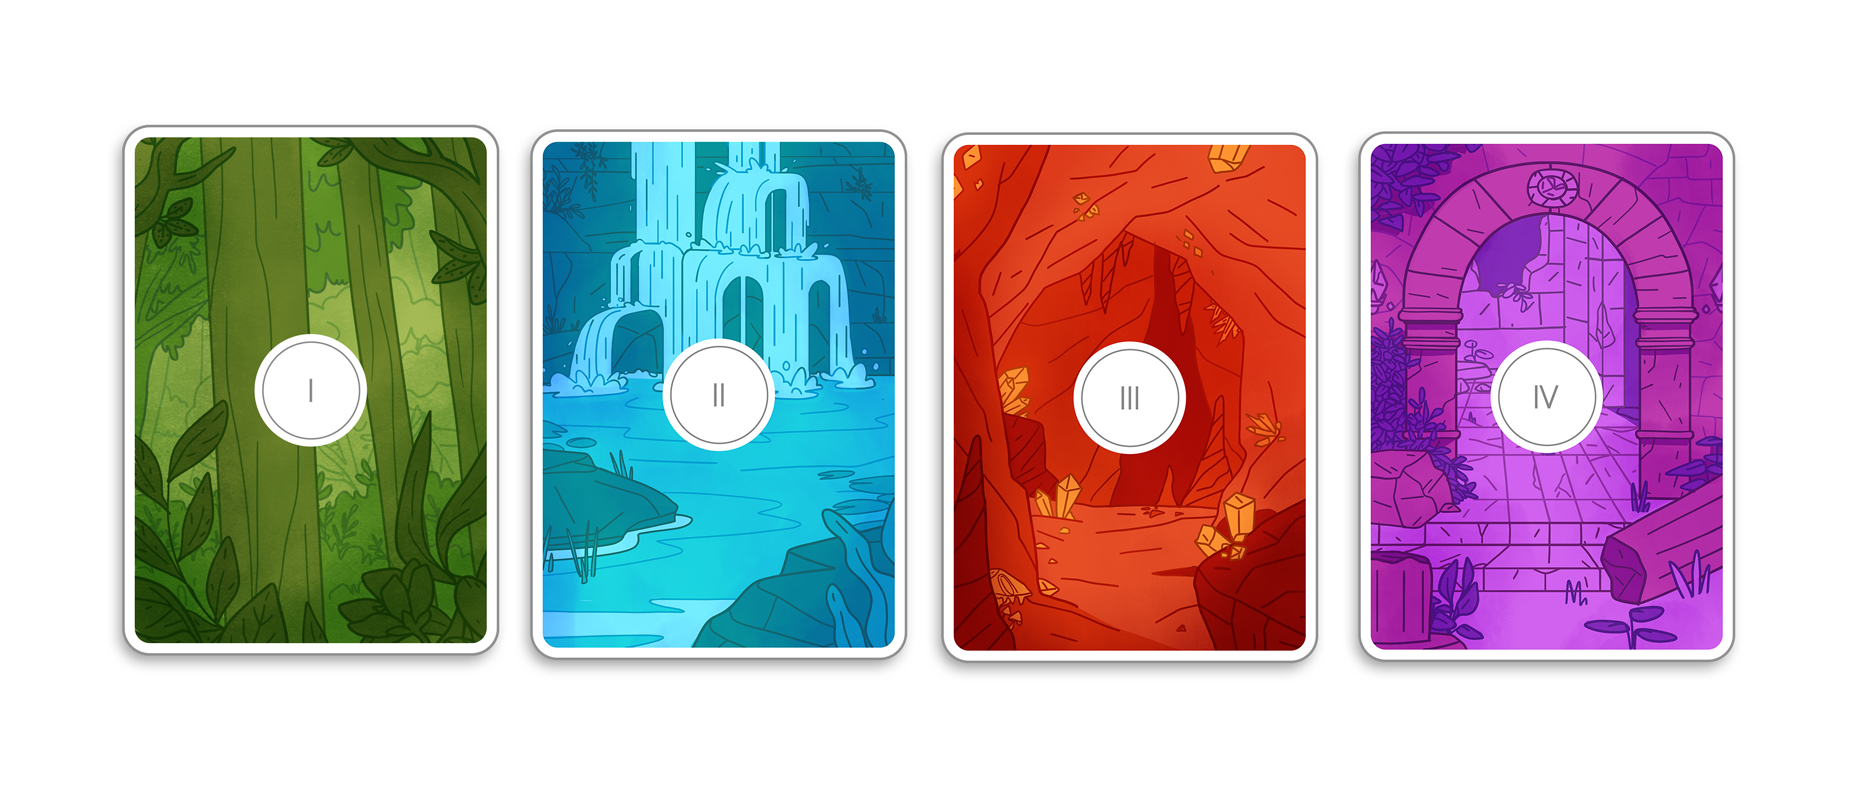 Card backs, environment illustrations.